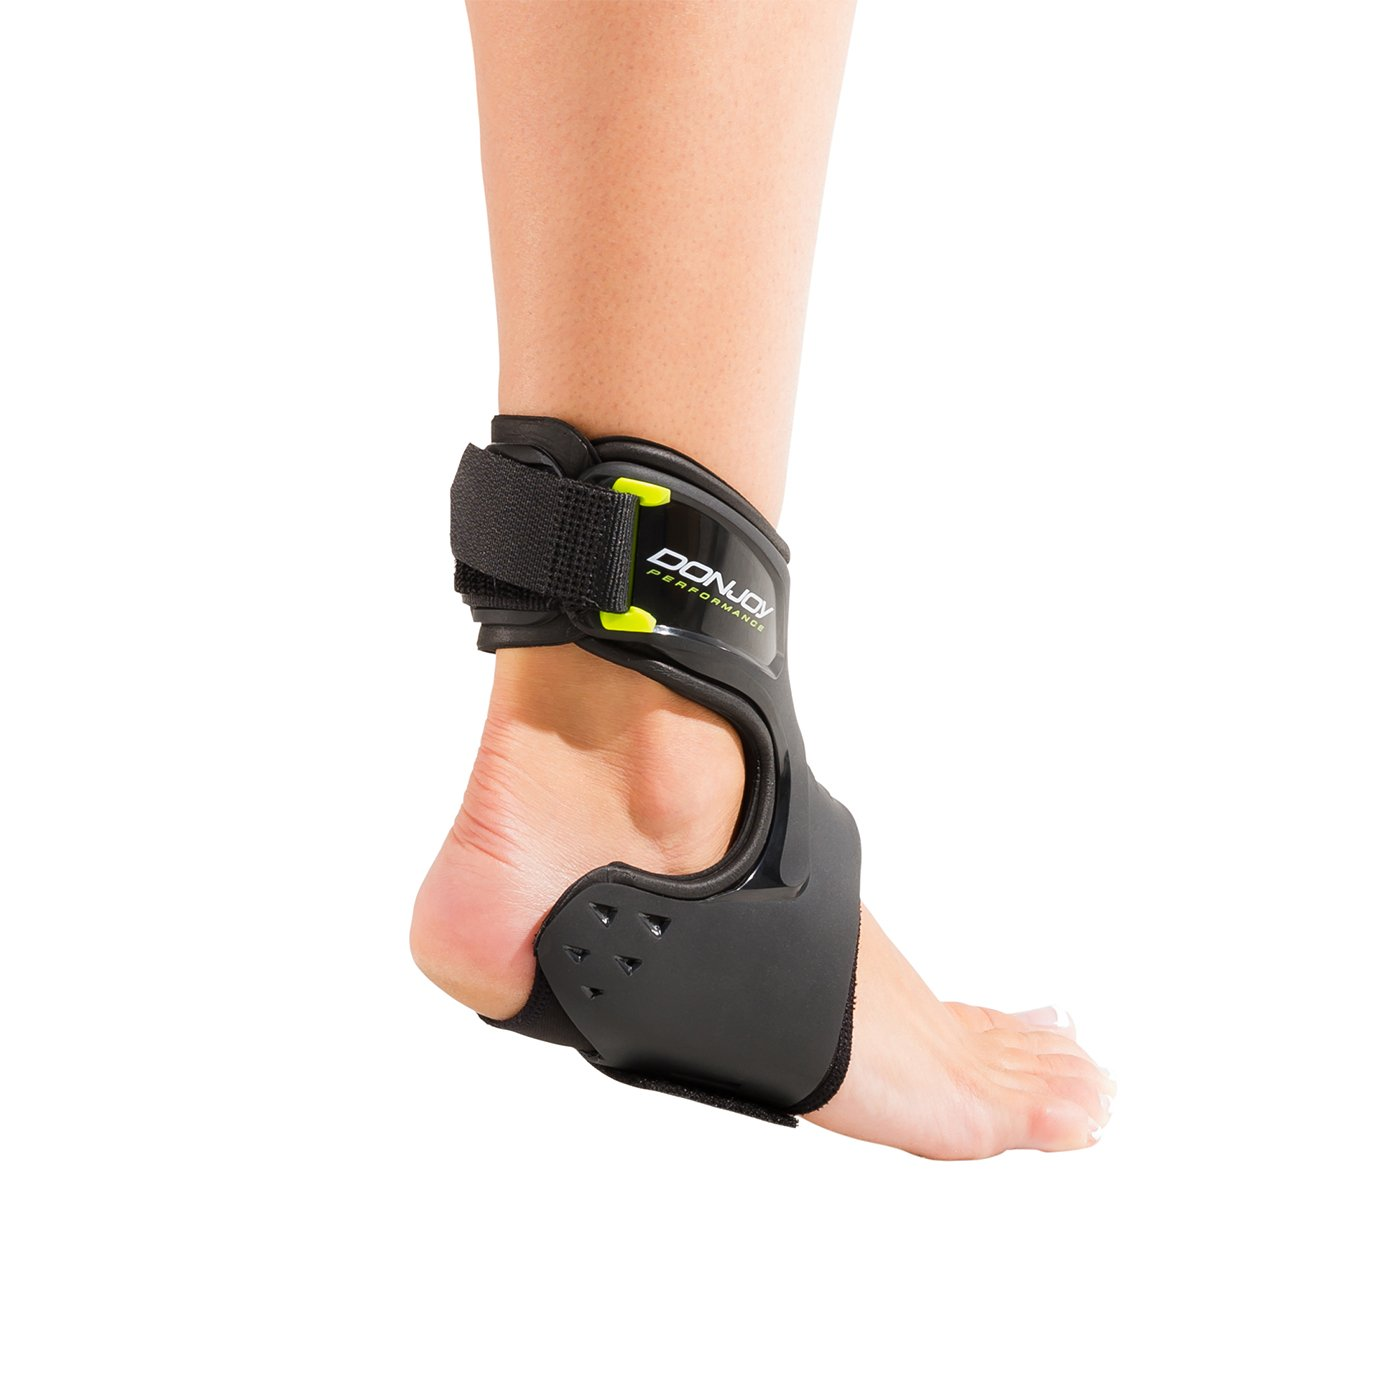 DonJoy Performance POD Ankle Brace, Best Support for Stability, Ankle Sprain, Roll, Strains for Football, Soccer, Basketball, Lacrosse, Volleyball -Medium- Right - Black by DonJoy Performance (Image #3)